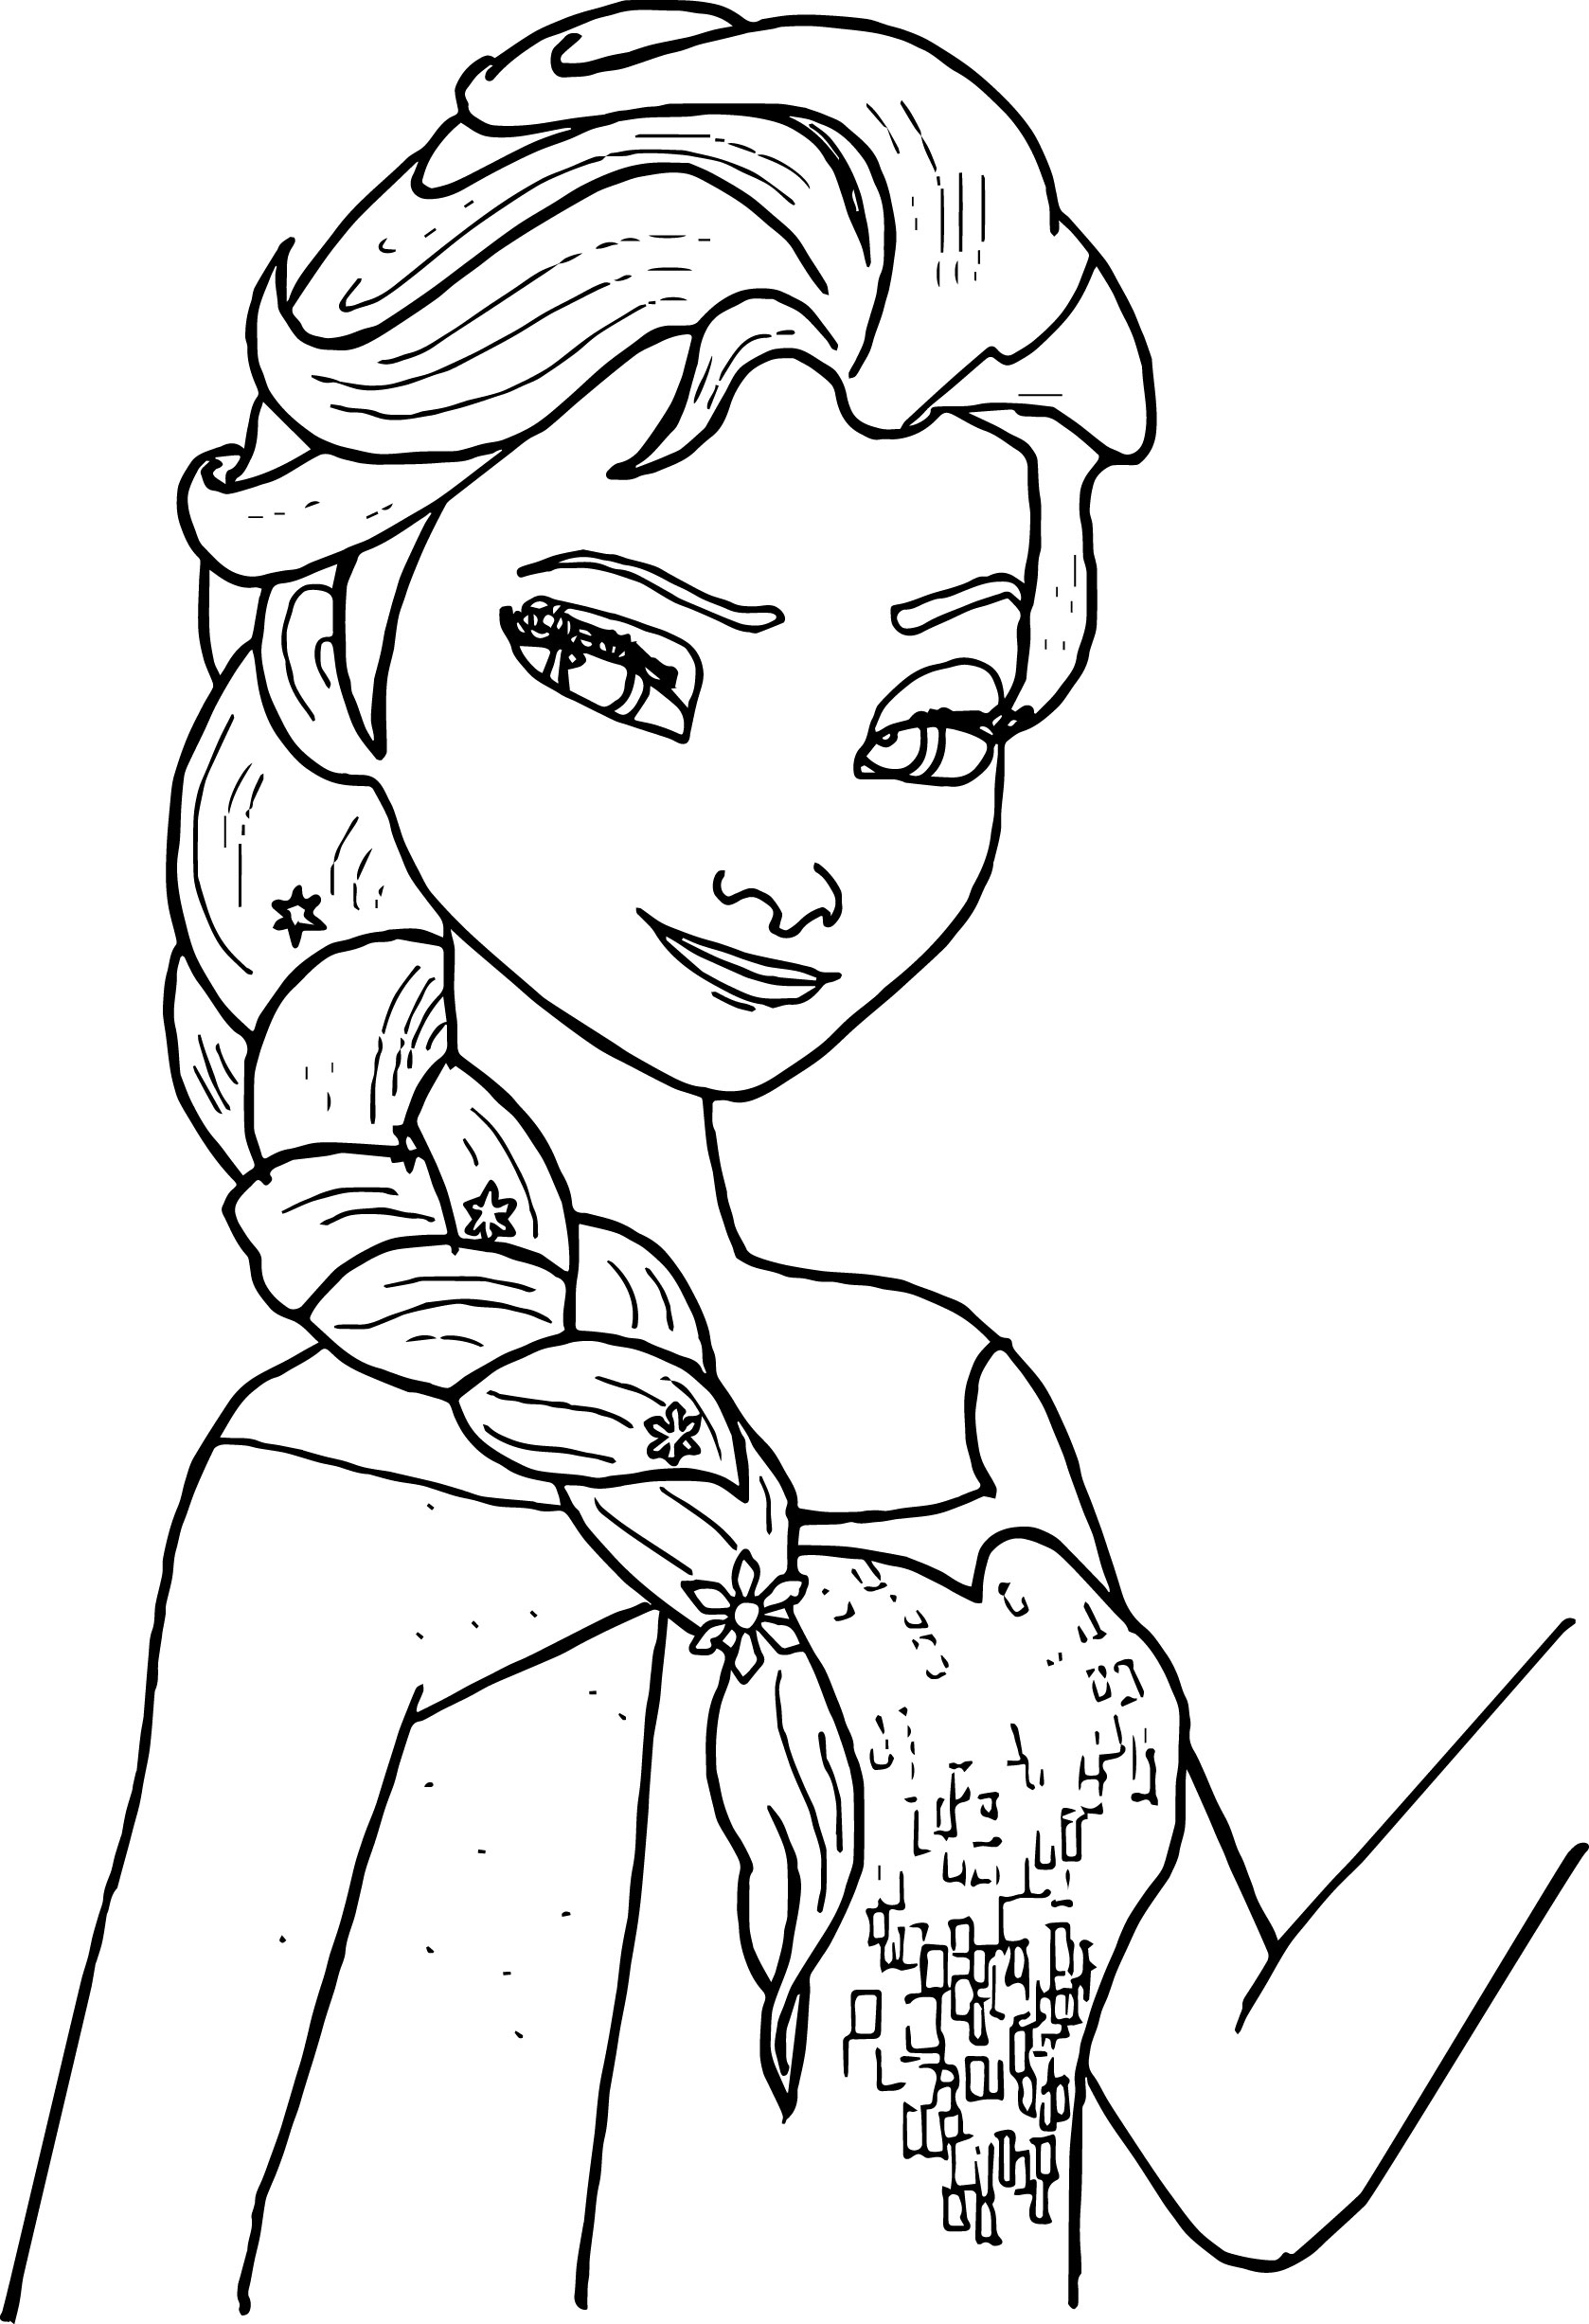 Printable Hair Coloring Pages. Elsa Coloring Page Printables Free Printable Pages for Kids  Best